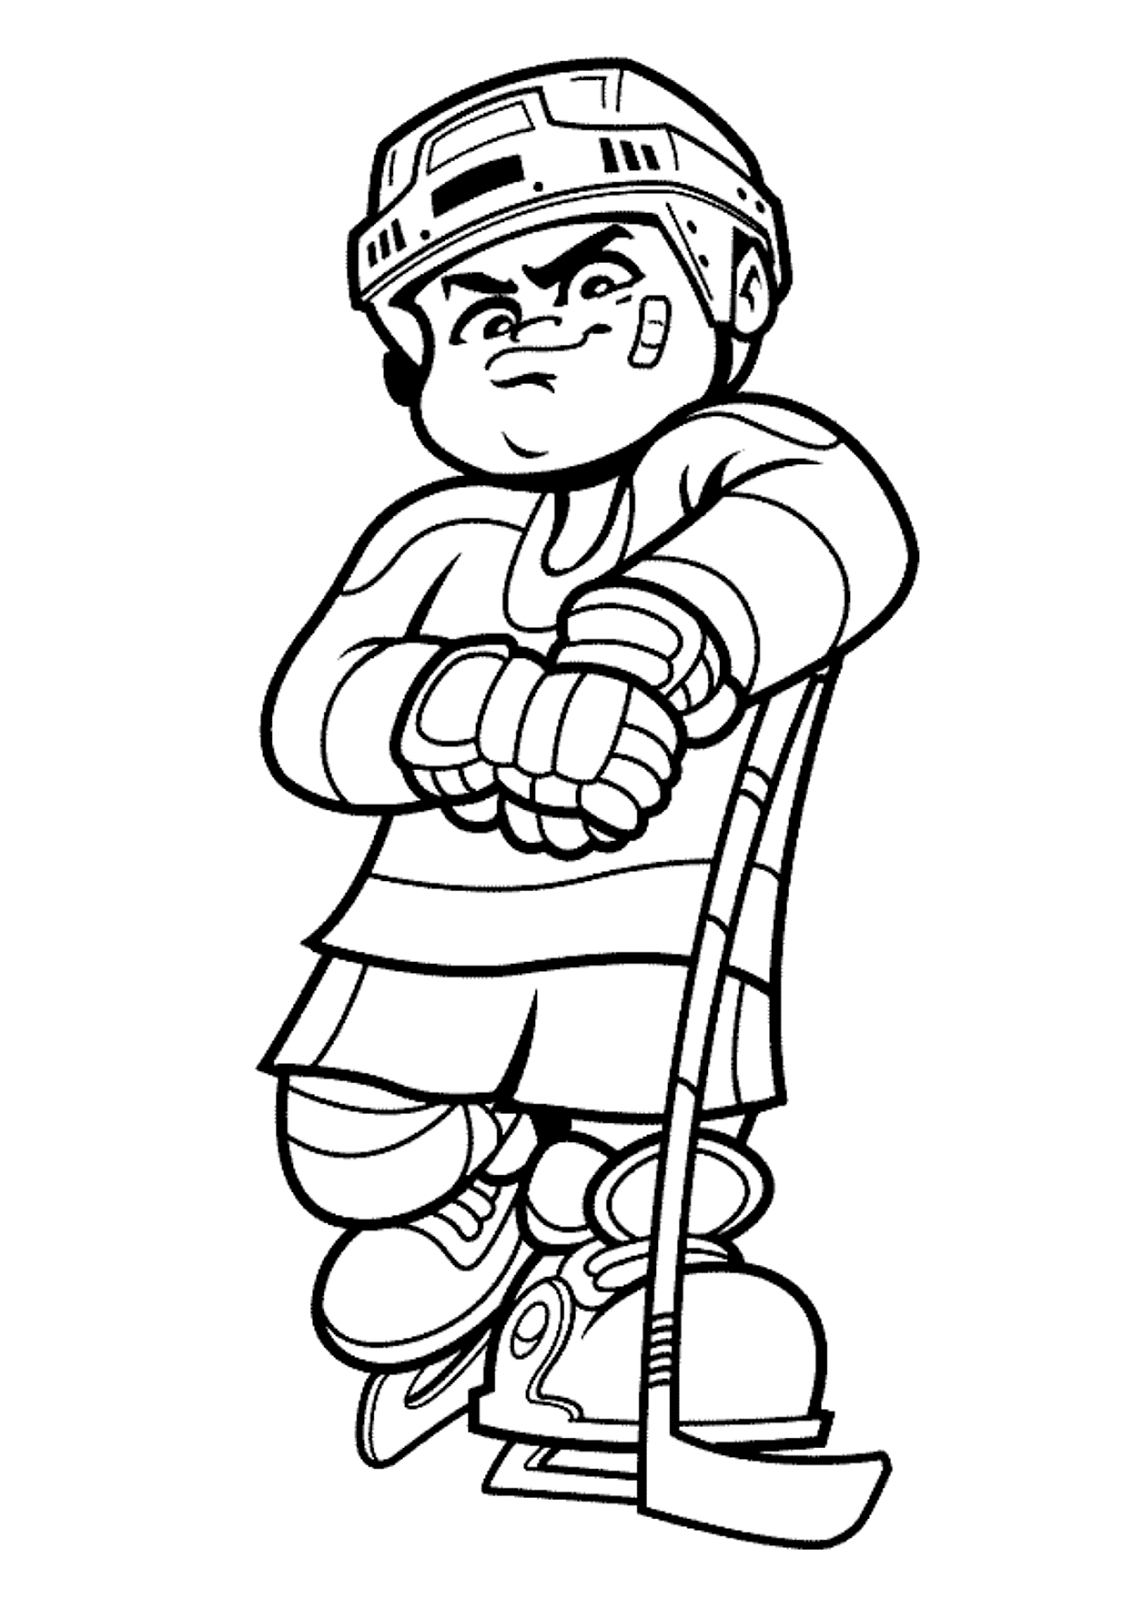 sports themed coloring pages hand drawn doodles on a sports theme sports coloring sports coloring themed pages